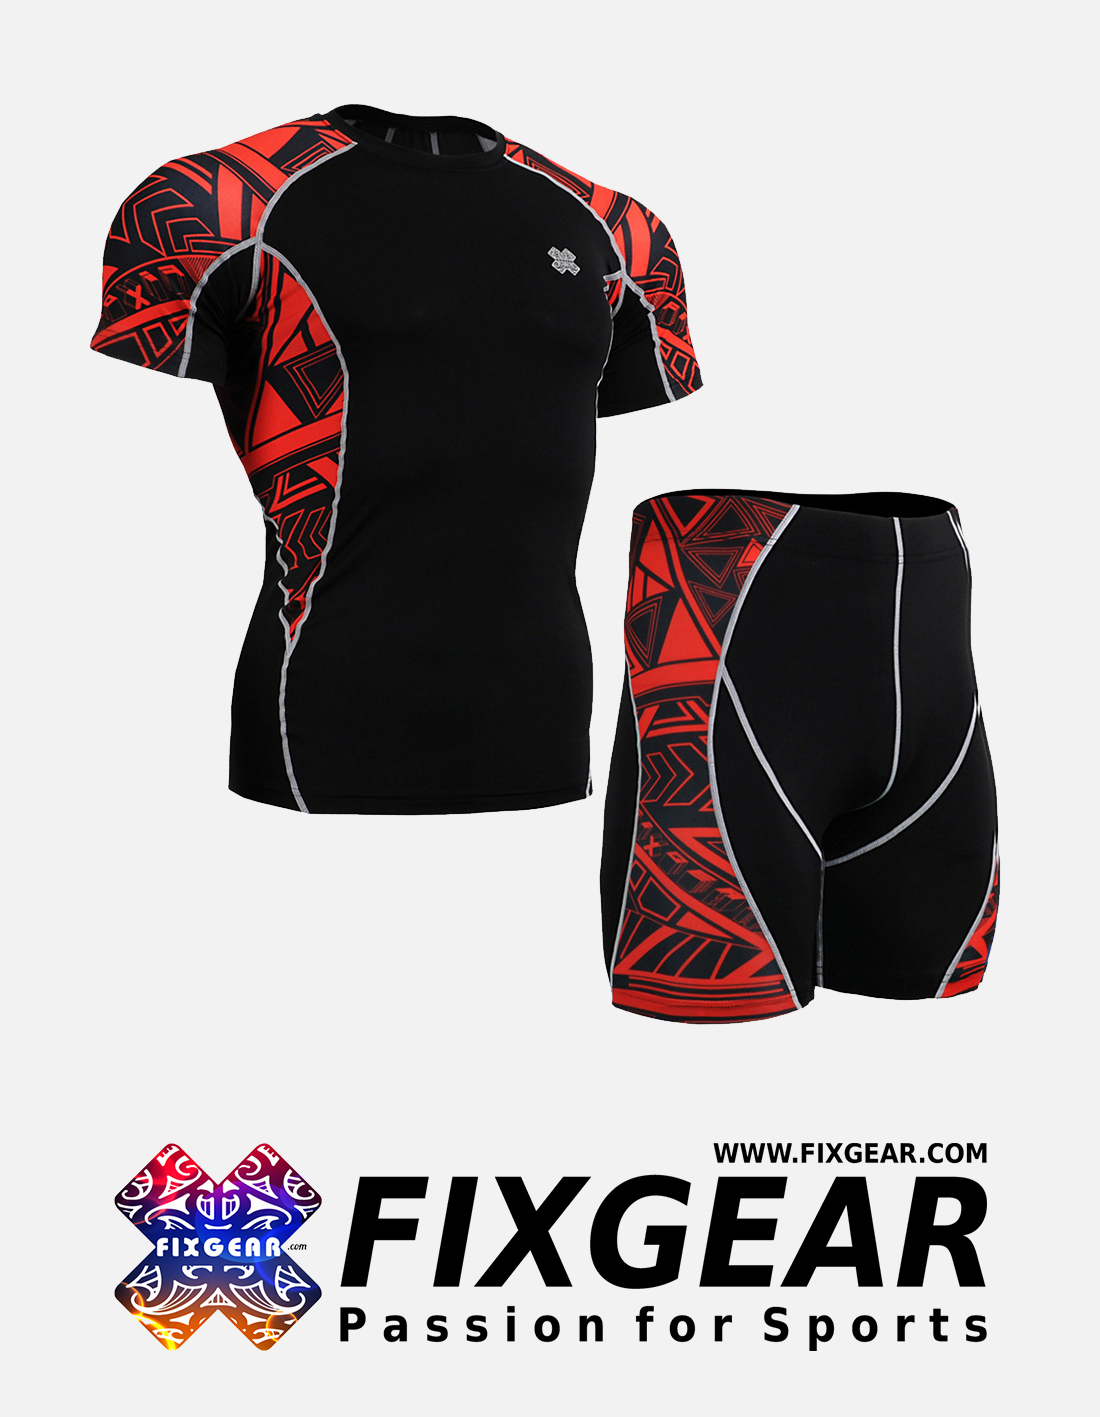 FIXGEAR C2S-P2S-B2 Set Compression Base Layer Shirt & Compression Drawer Shorts